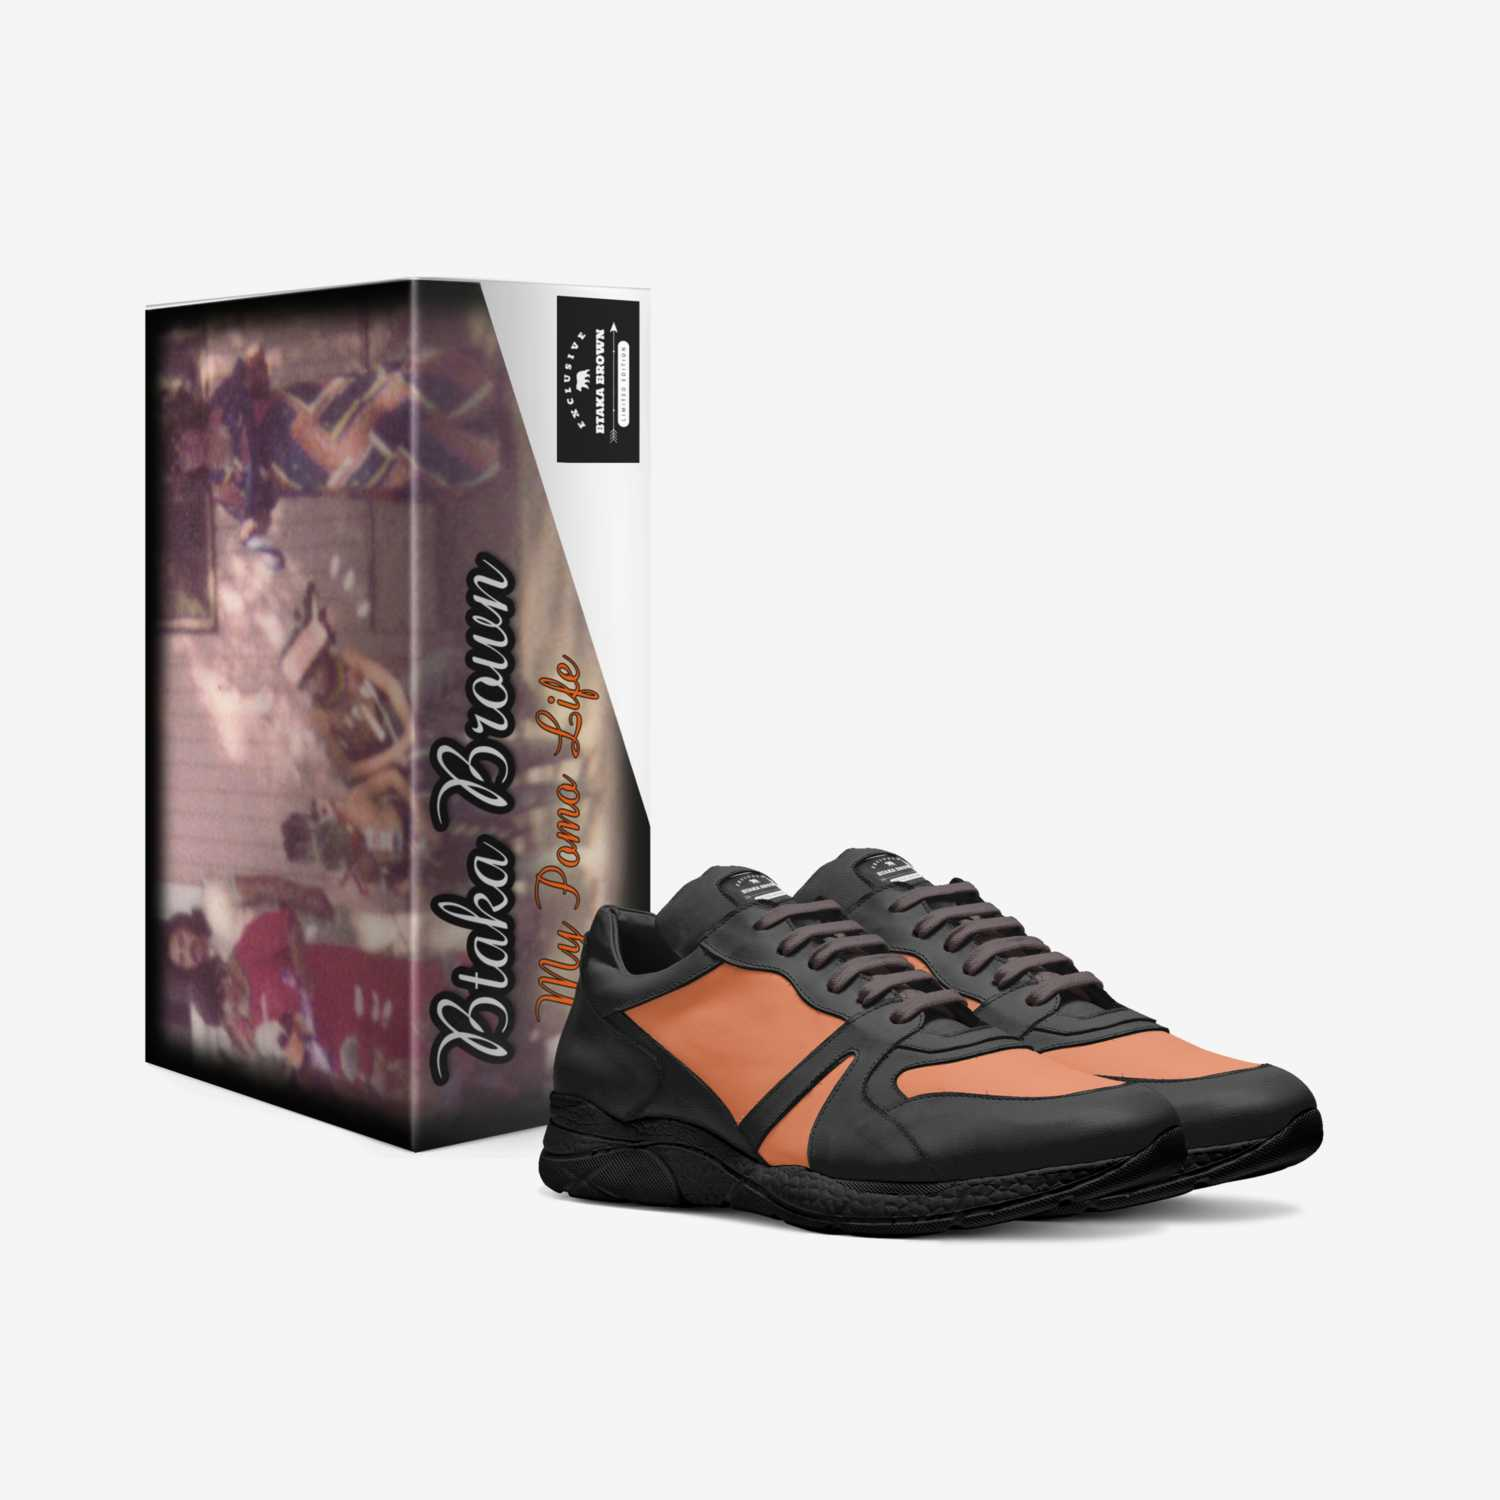 My Pomo Life custom made in Italy shoes by Btaka Brown   Box view